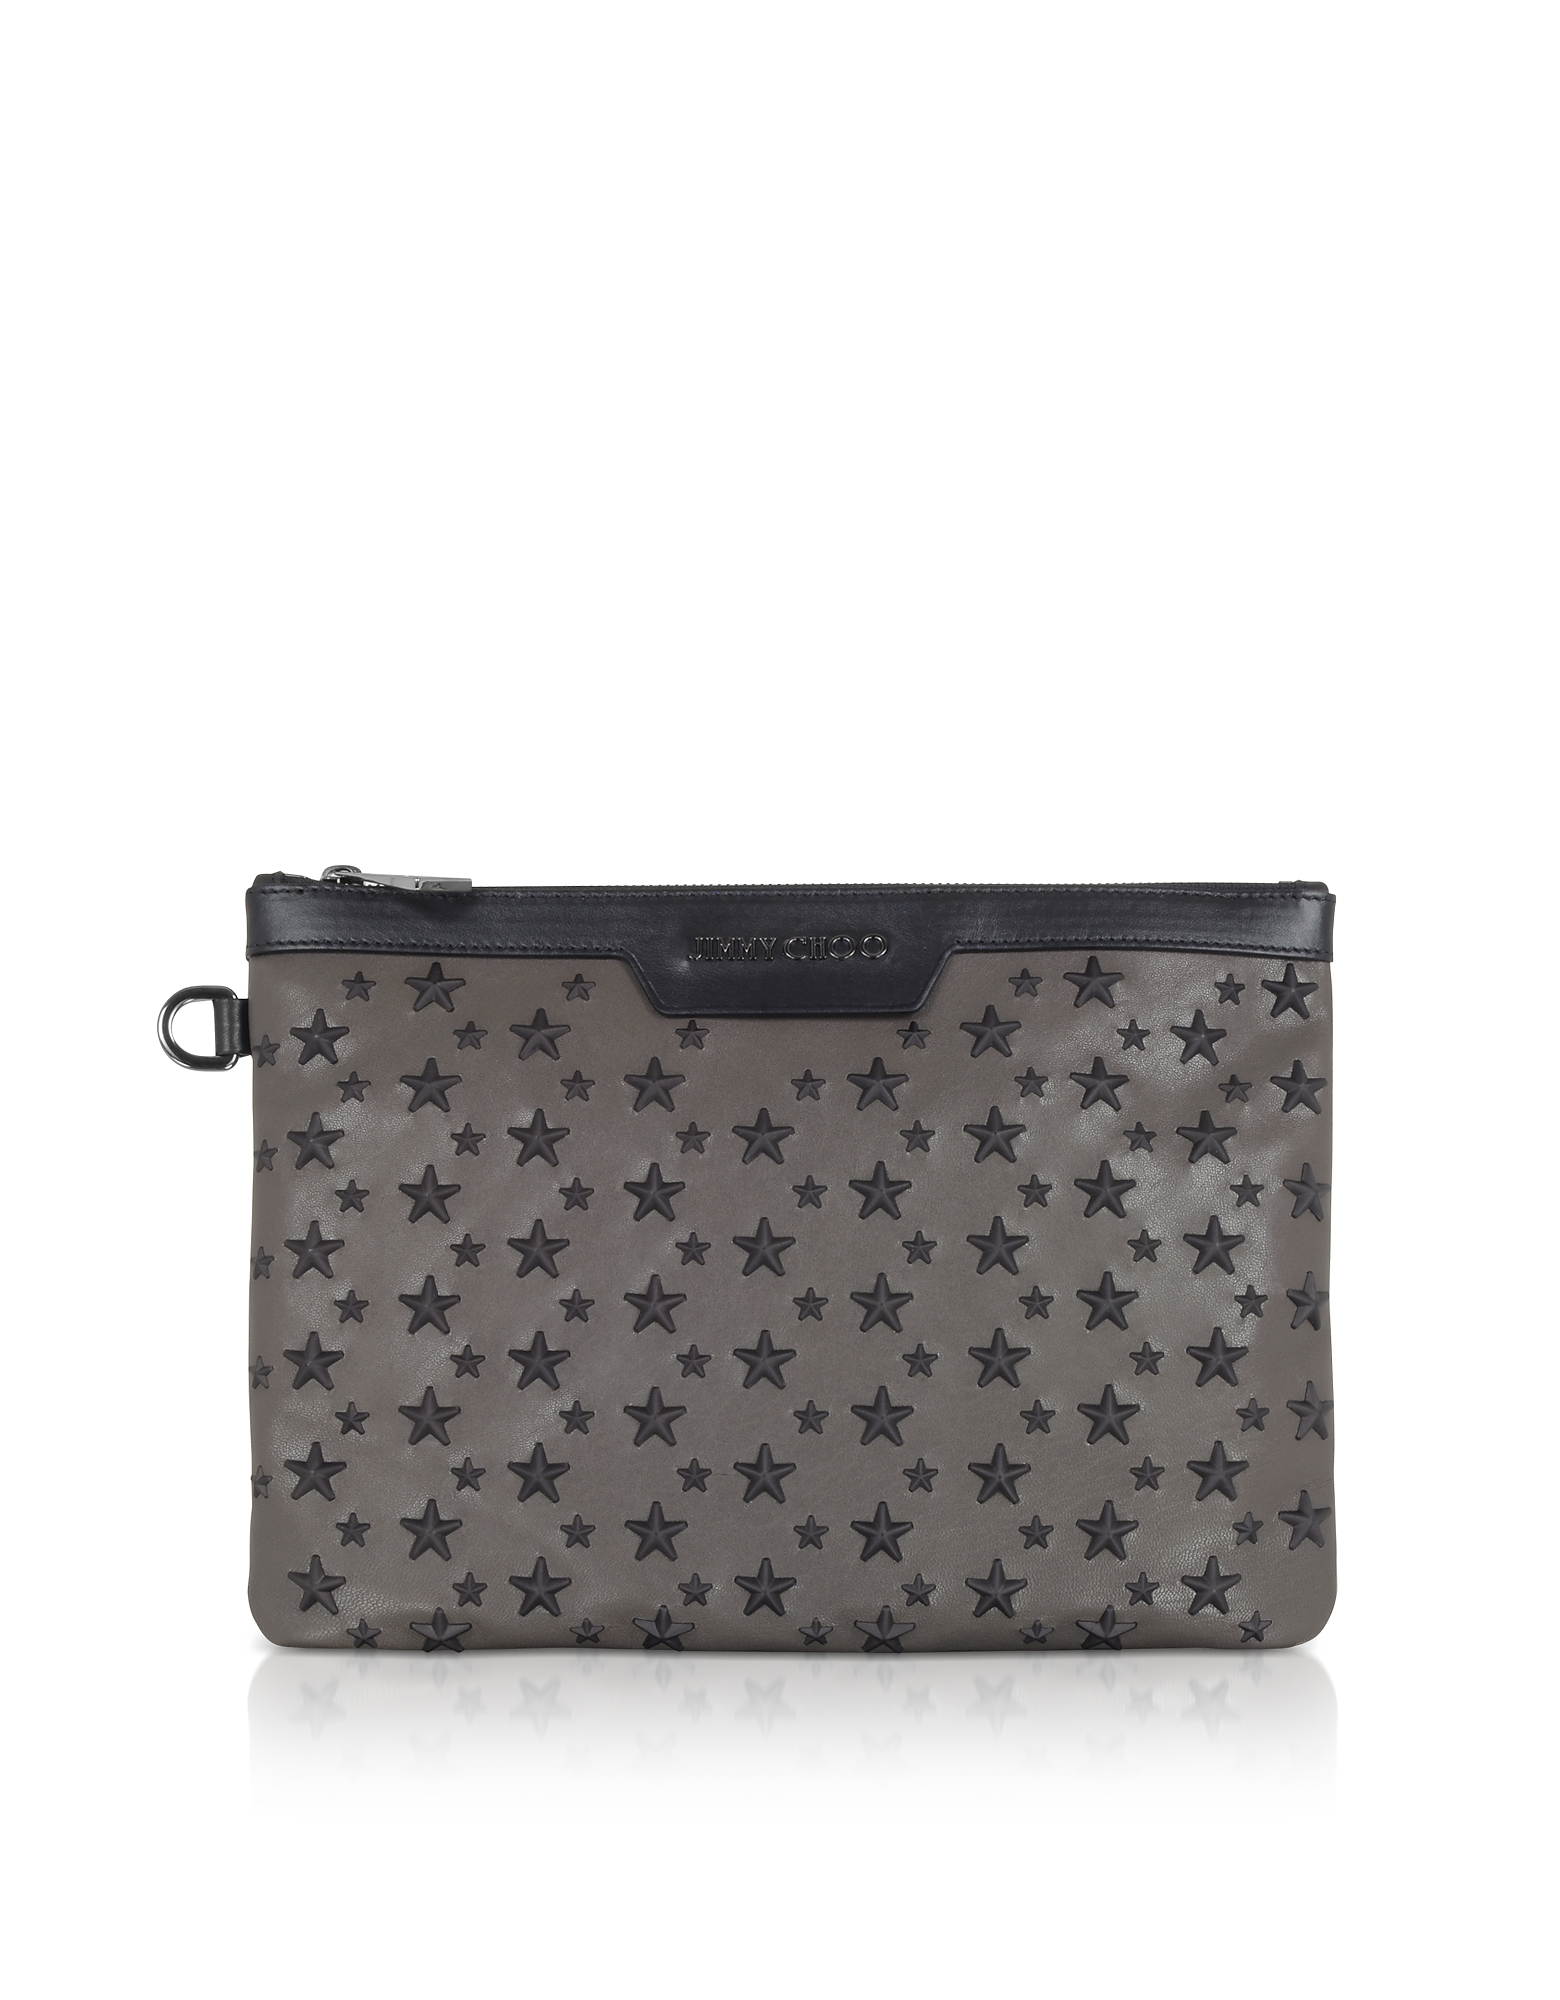 Jimmy Choo Handbags, Smoke/Black Derek/S Small Clutch w/Stars